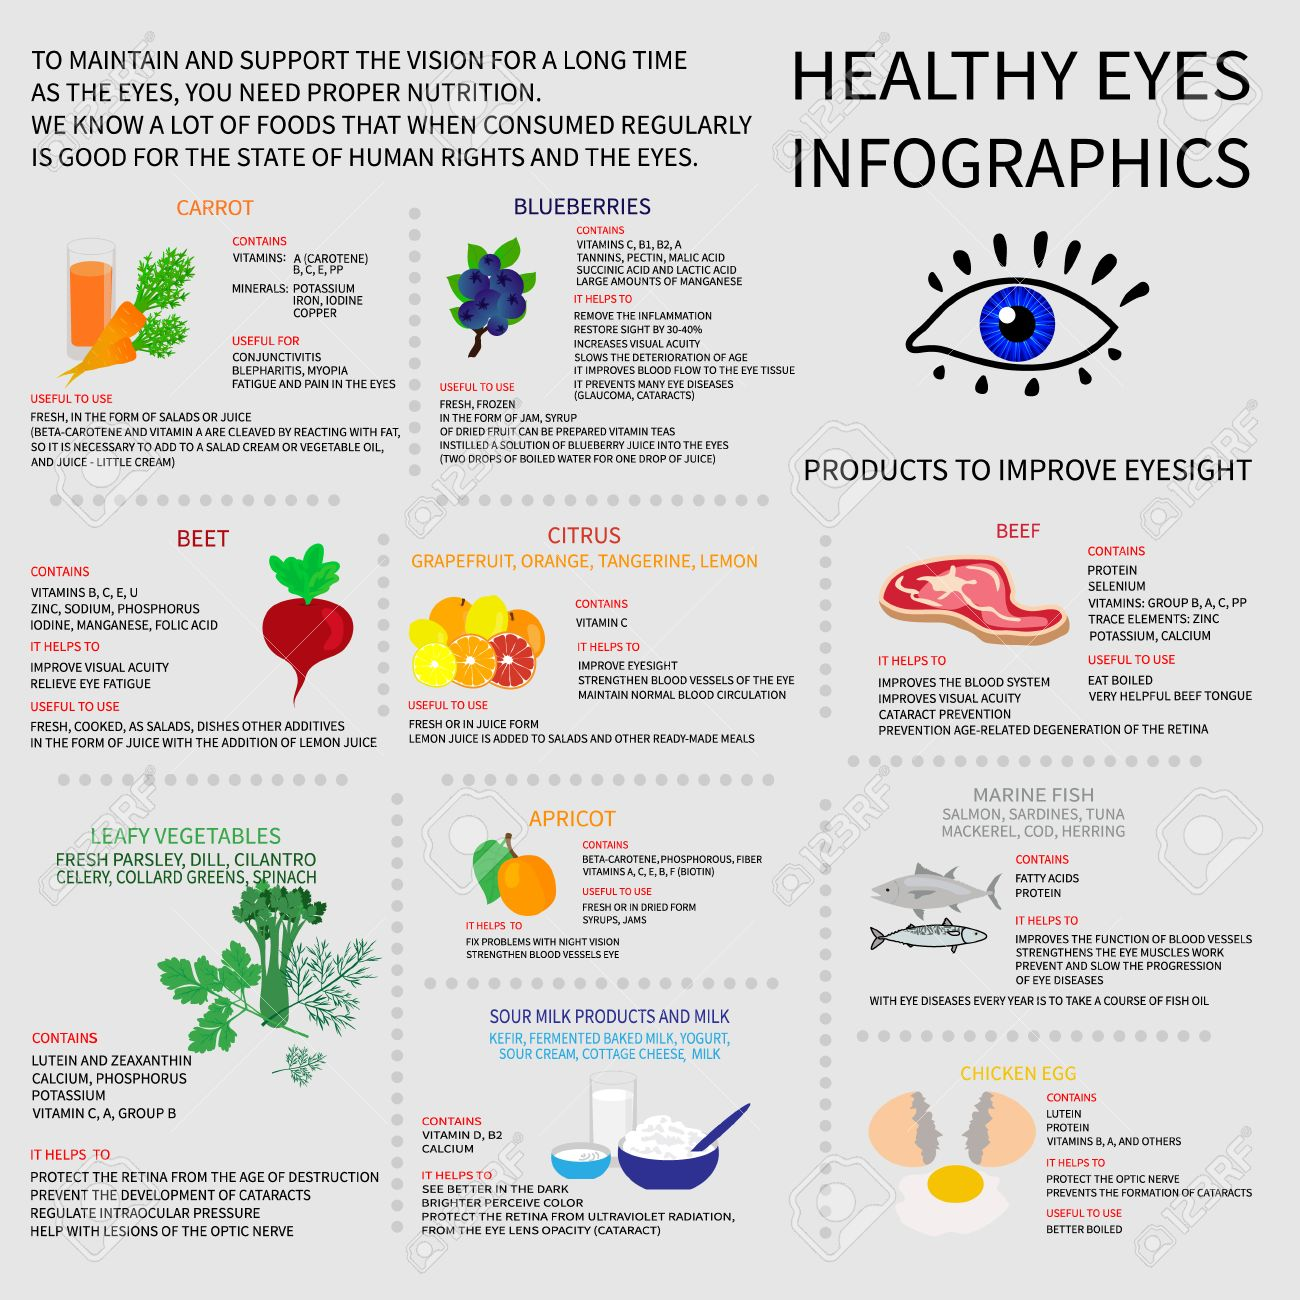 0e88d7f5e3d Infographics about foods that are good for eye health. Displays information  about vitamins and minerals